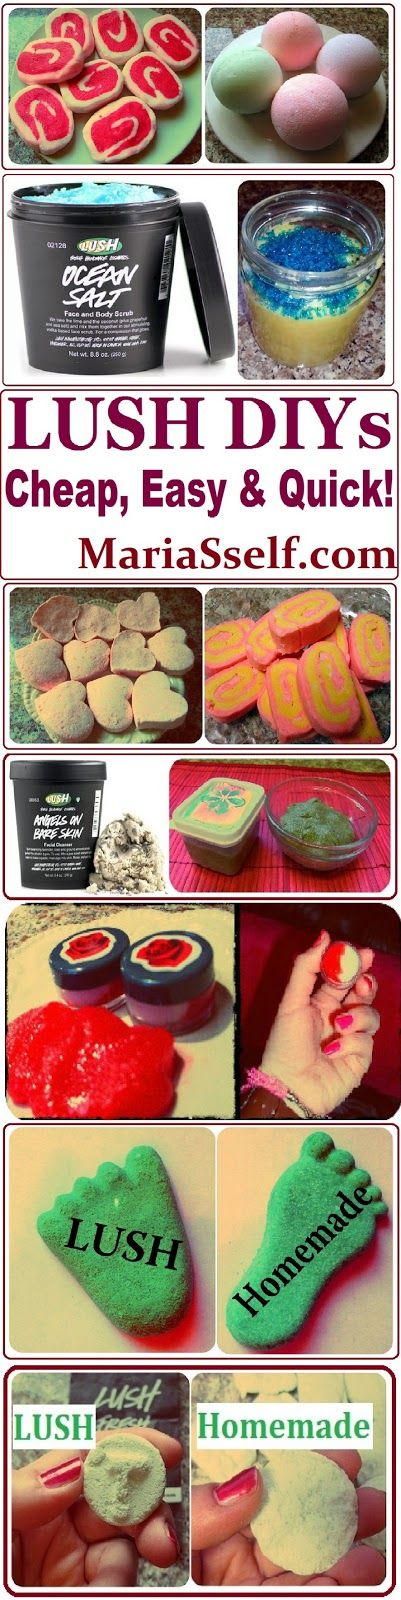 DIY LUSH Product Recipes, How to Make them CHEAP, EASY & QUICK  @Emily Schoenfeld Schoenfeld Schoenfeld Allen